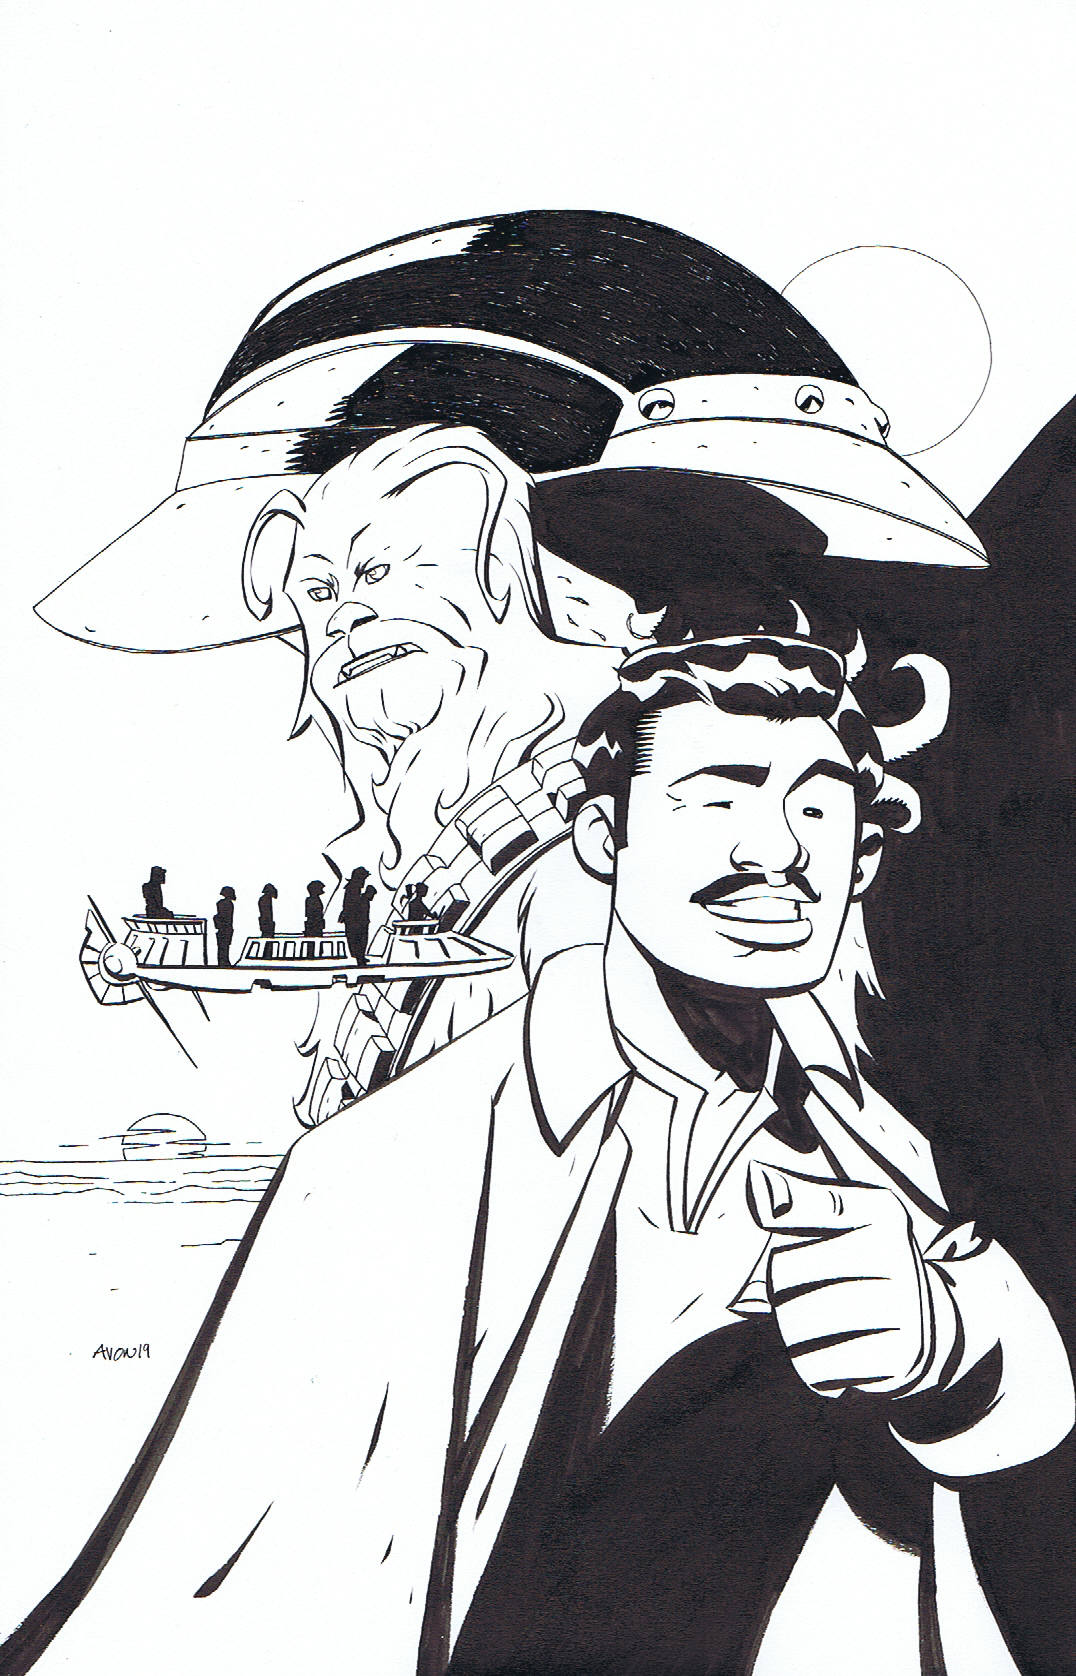 STAR WARS ADVENTURES #23 COVER ART